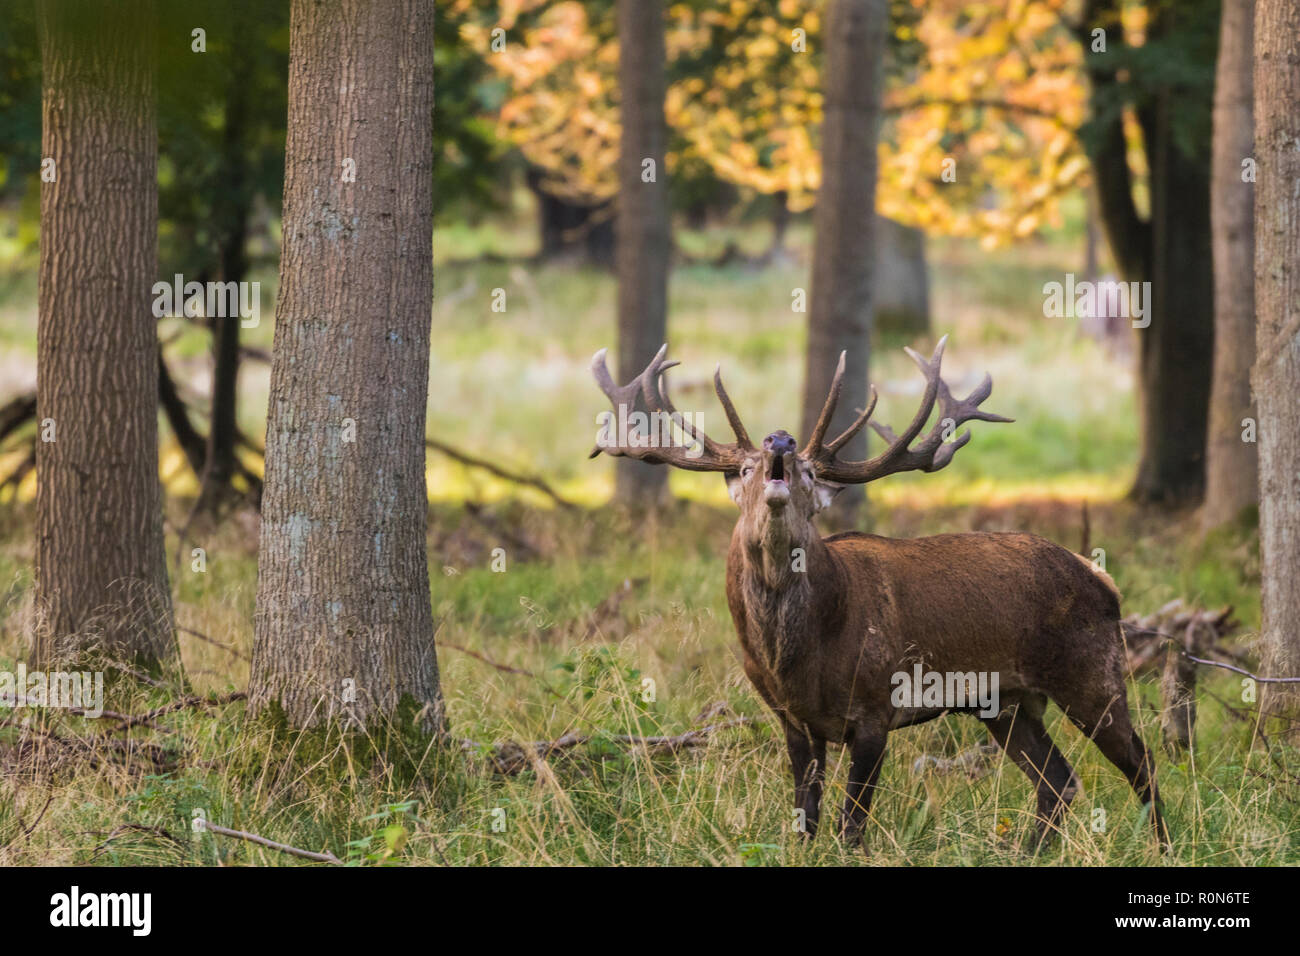 Stag during rut season bellowing at Jaegersborg dyrehaven, Denmark - Stock Image